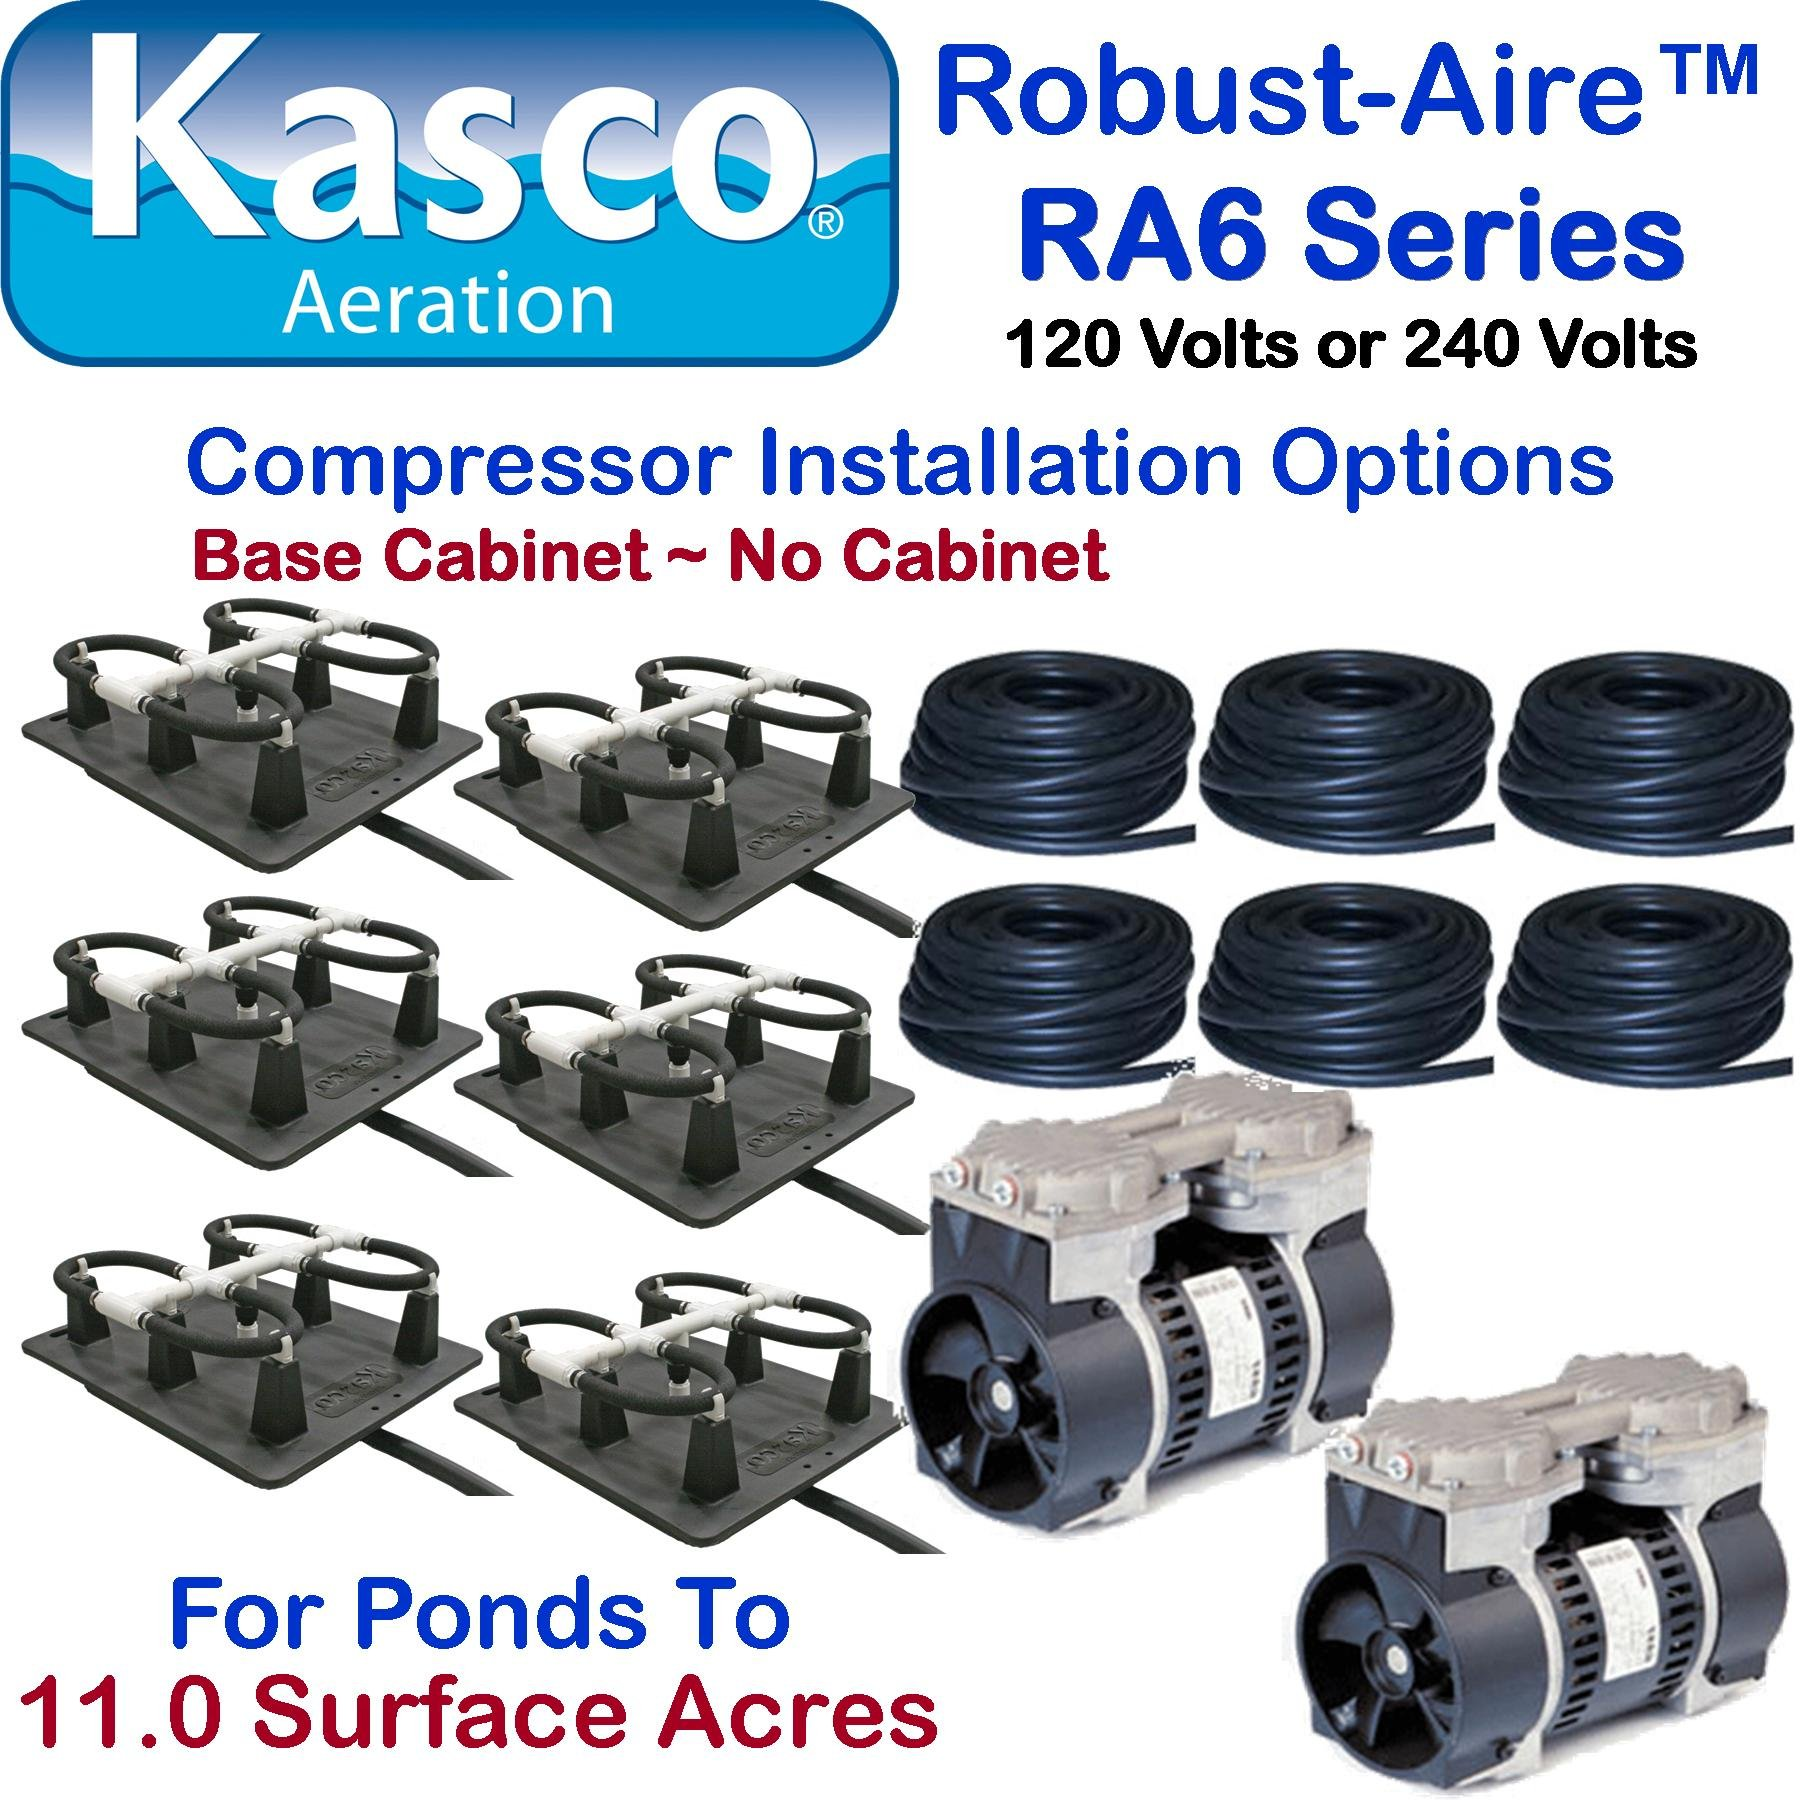 Kasco Marine Robust-Aire Aquatic Aeration System RAH6NC - For Ponds to 11.0 Surface Acres, 240 Volts, No Cabinet Included by Kasco Marine